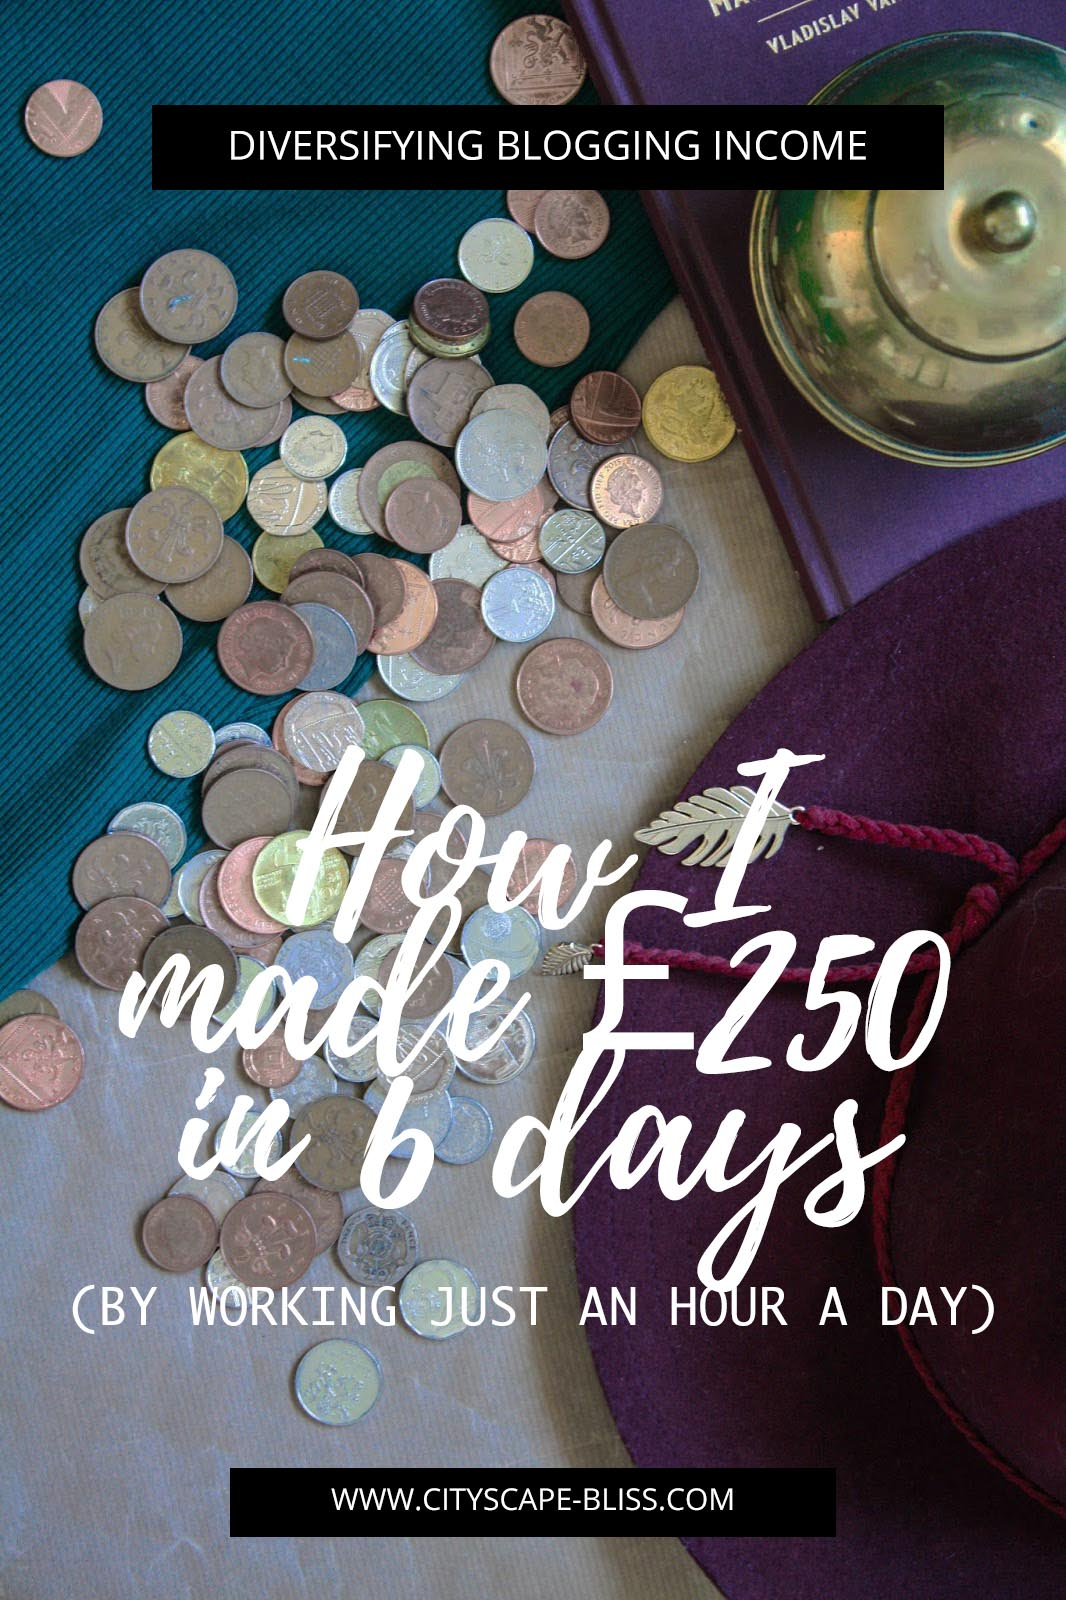 Diversifying blogging income: How I made £250 in 6 days (by working just an hour a day!)